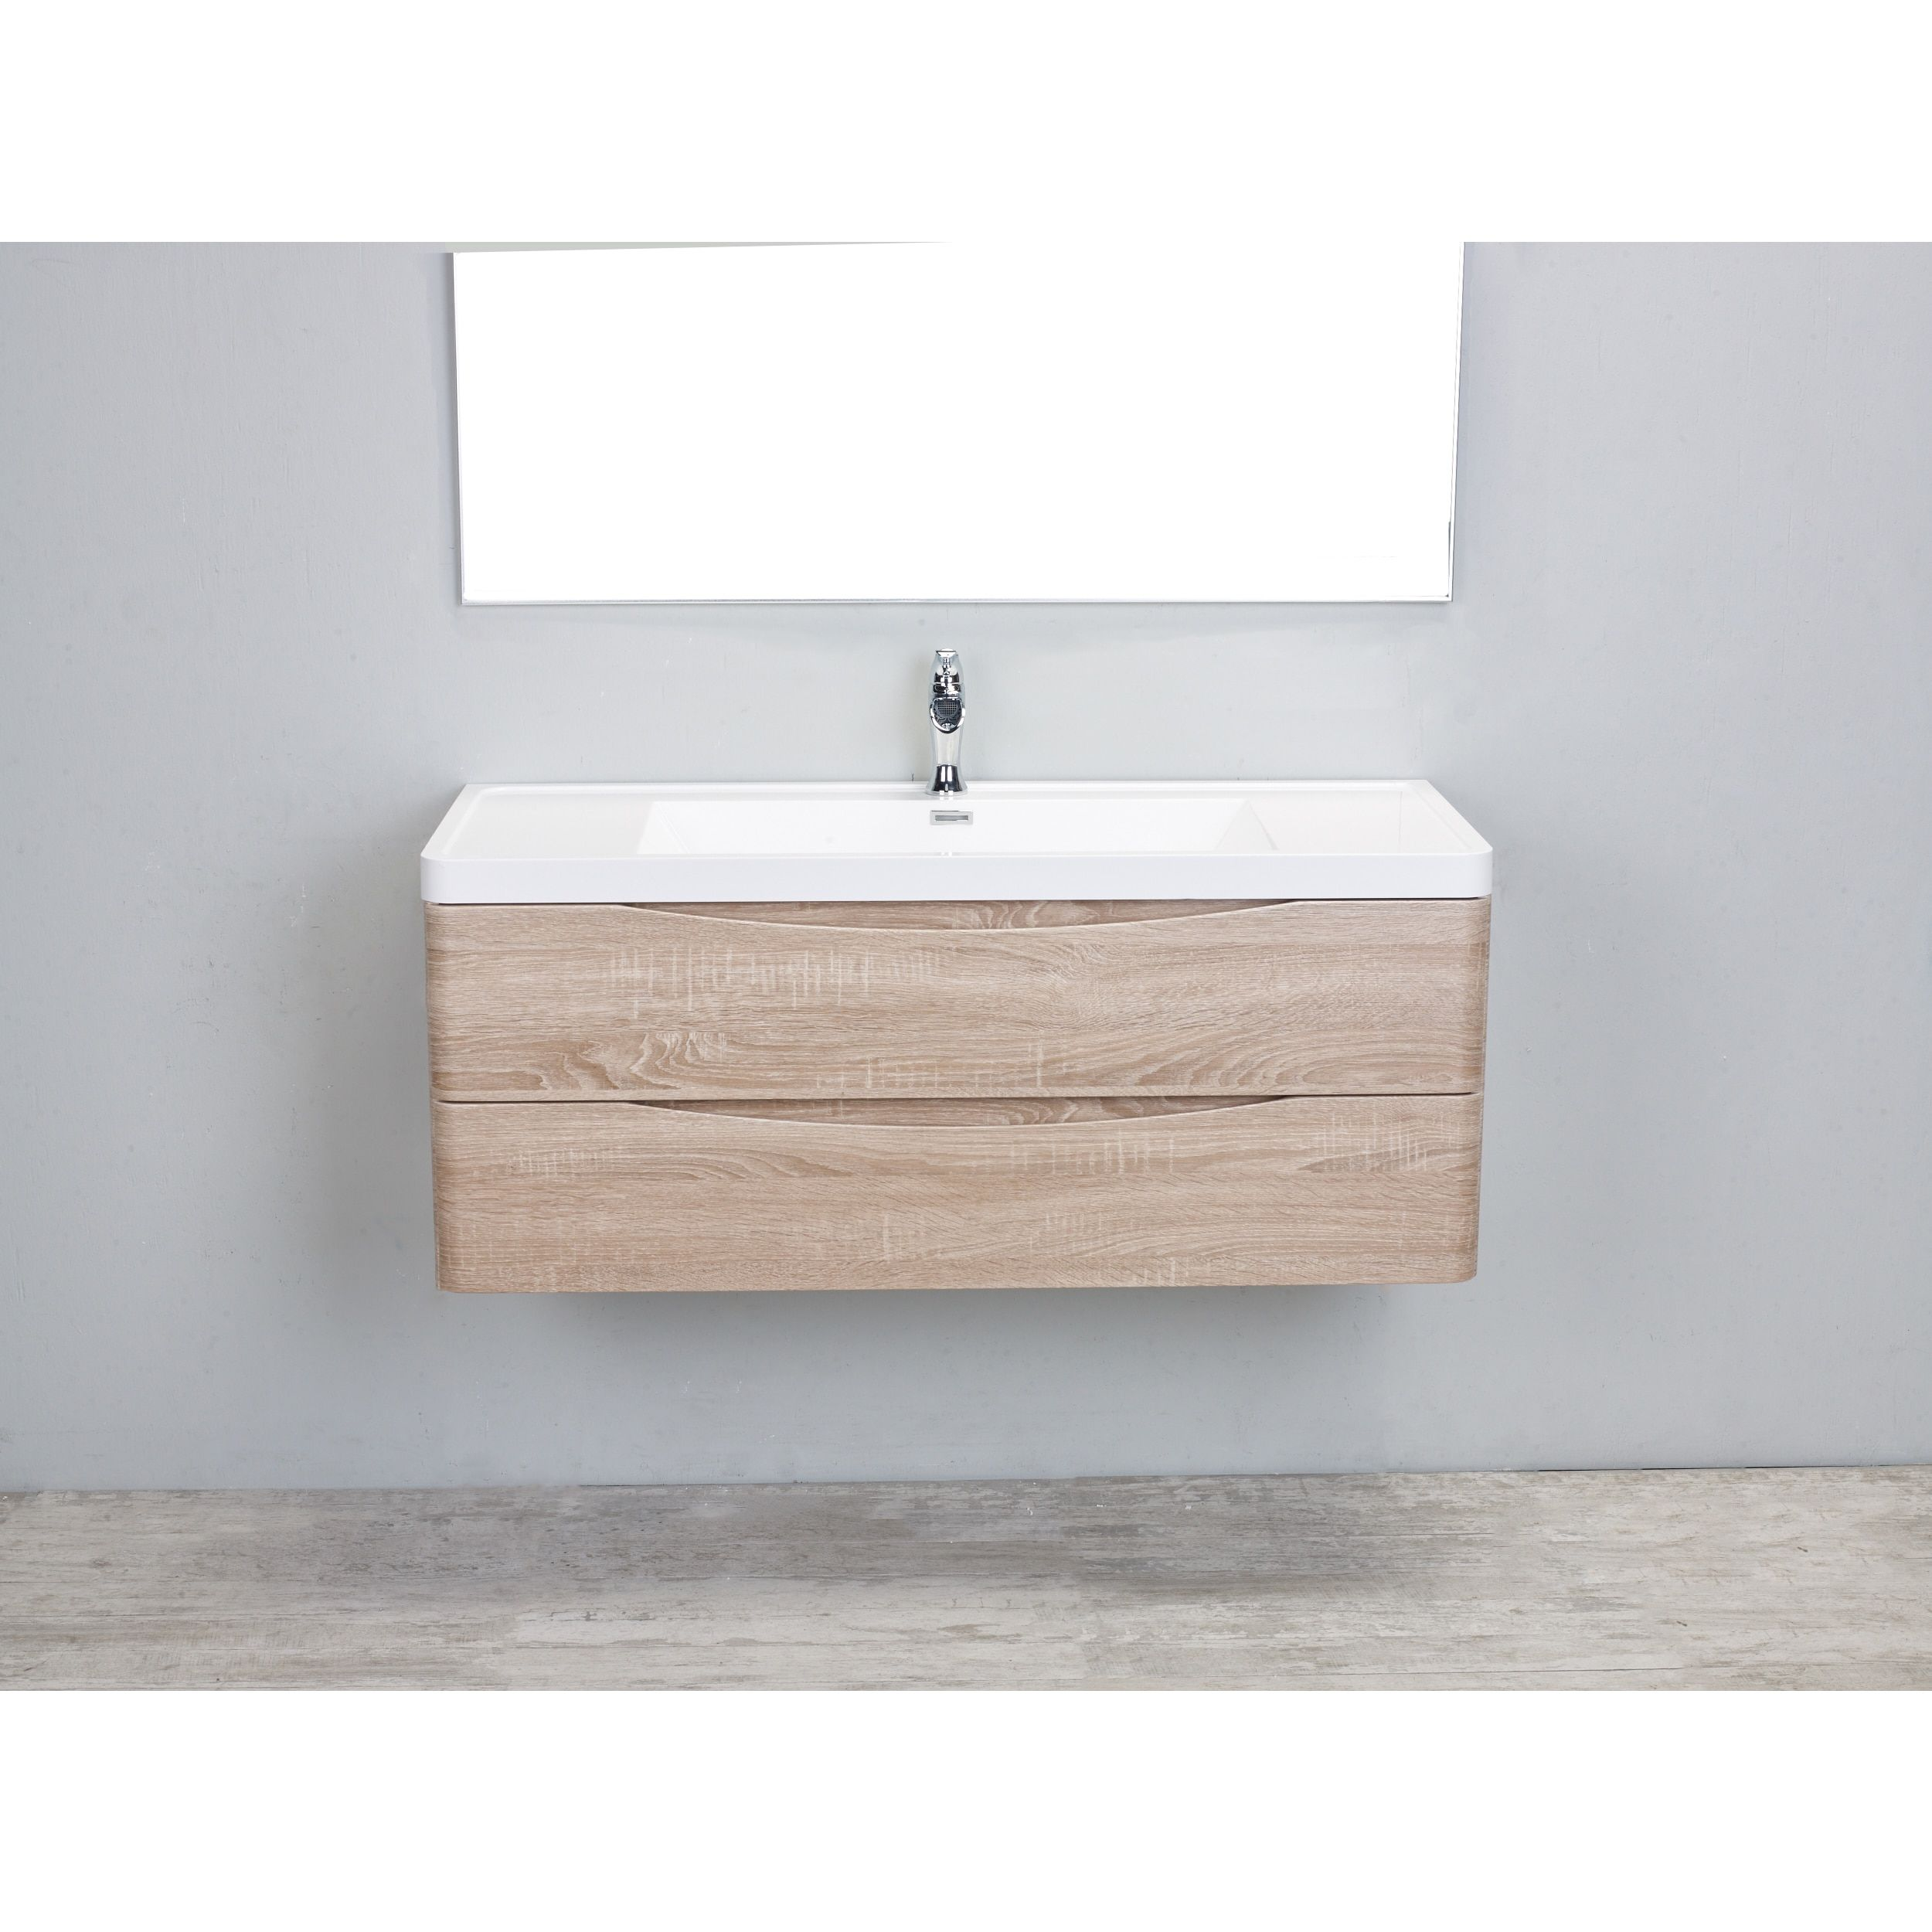 washbasin small free ms opulent virtu single bathroom cabinets cabinet wall sink vanity s floating decoration unit usa element modern sweet vanities simplicity mount design sinks bedroom makeup marsala hanging deep ideas astonishing inch and es for marvelous mounted table best